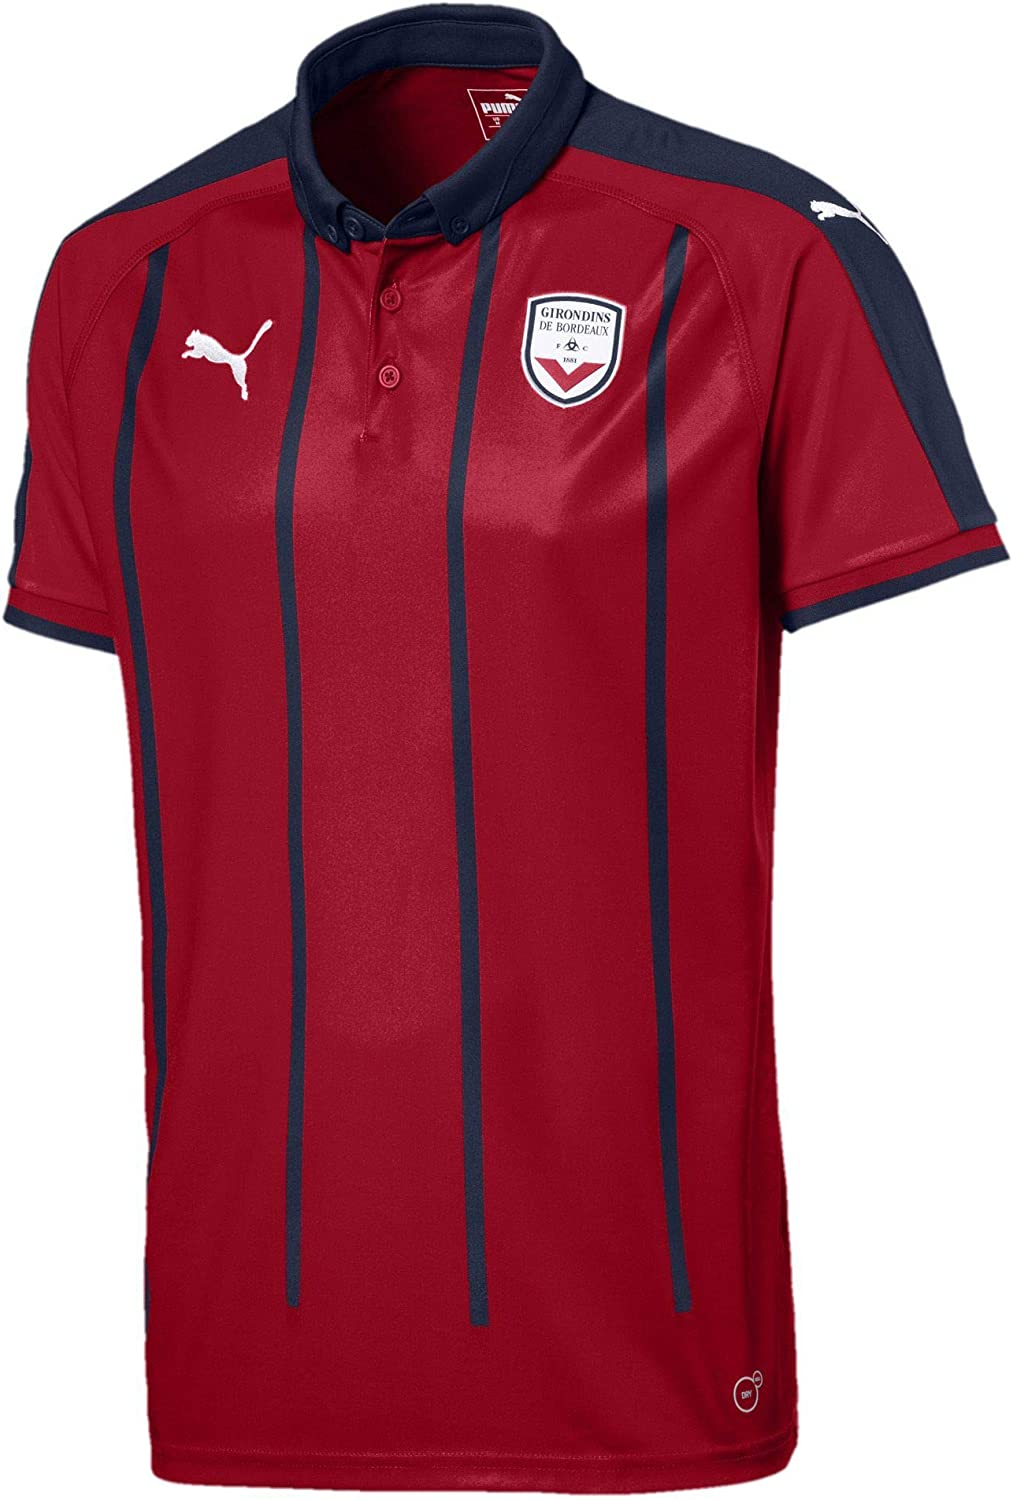 Puma Men's Fcgb Third Shirt Replica Jersey